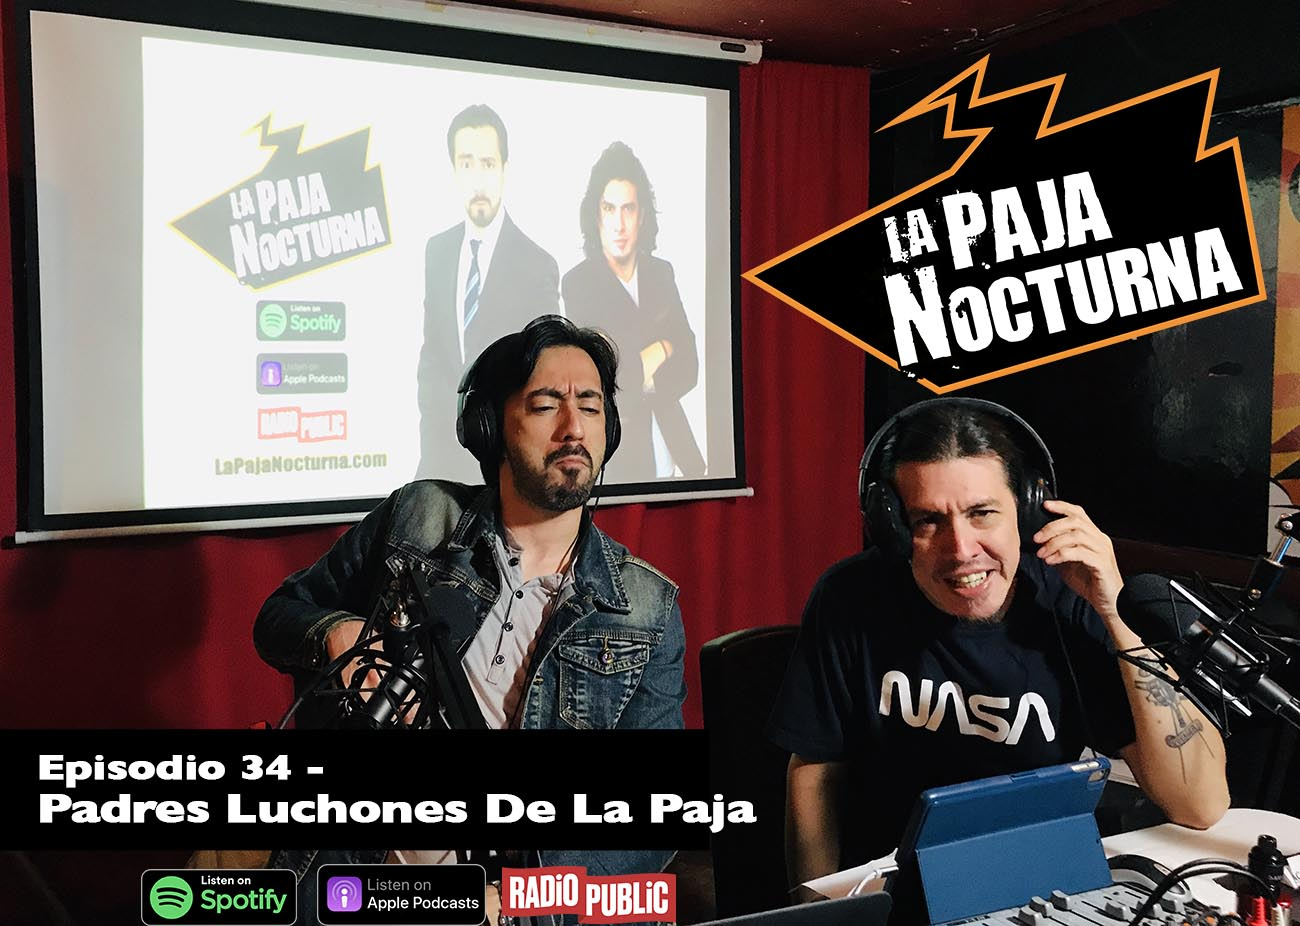 La Paja Nocturna Podcast Episodio 34